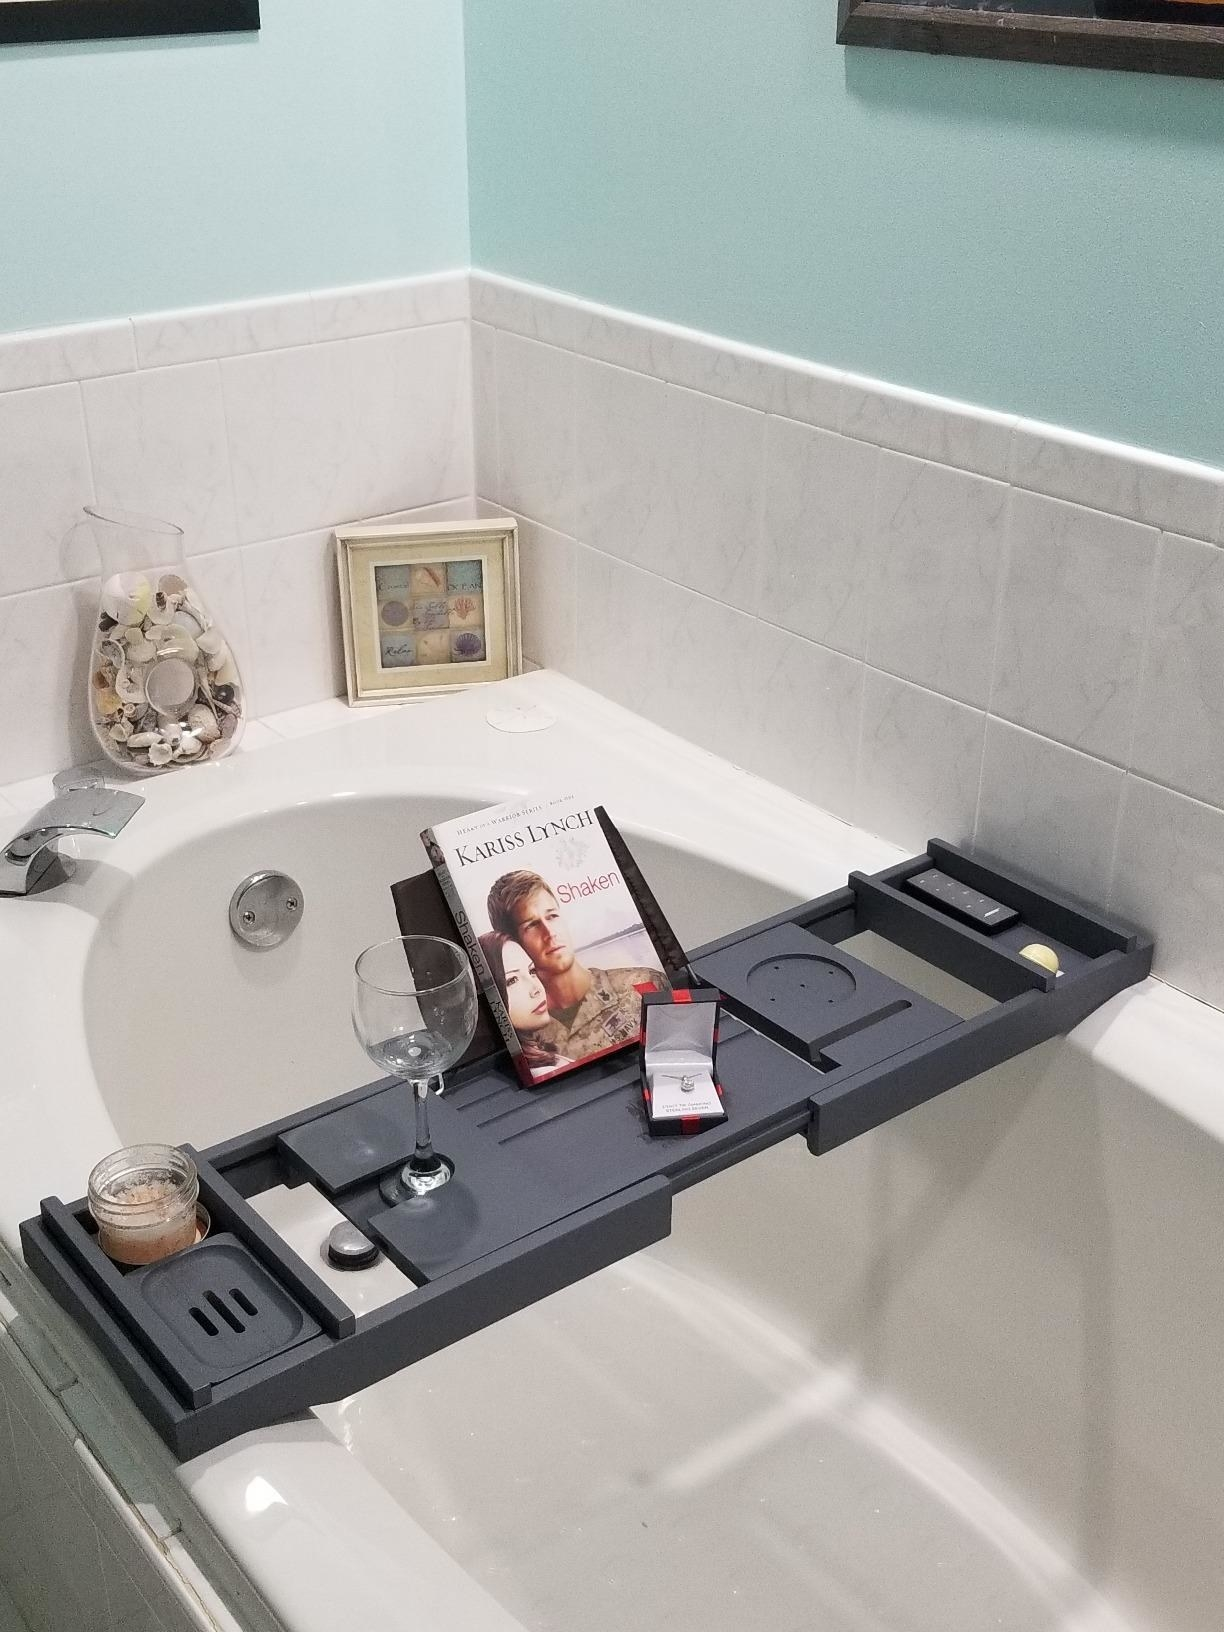 A reviewer showing the caddy on their tub